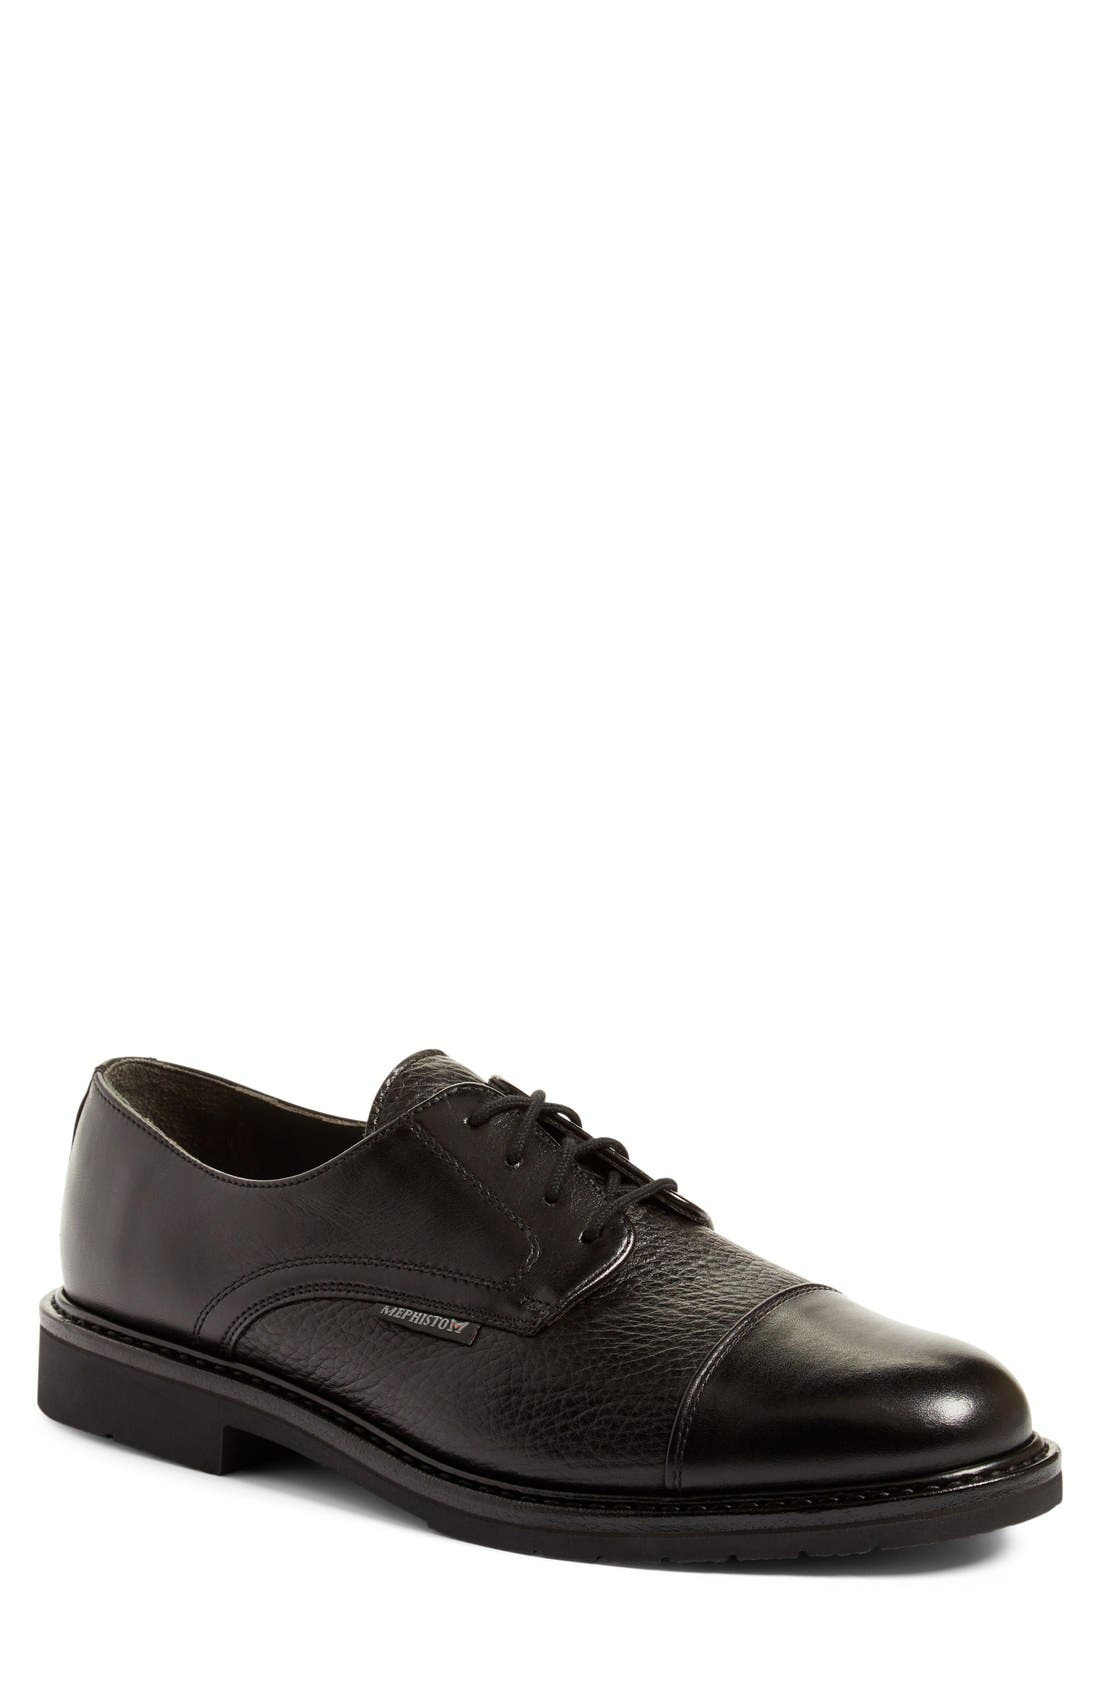 'Melchior' Cap Toe Derby,                         Main,                         color, Black Leather